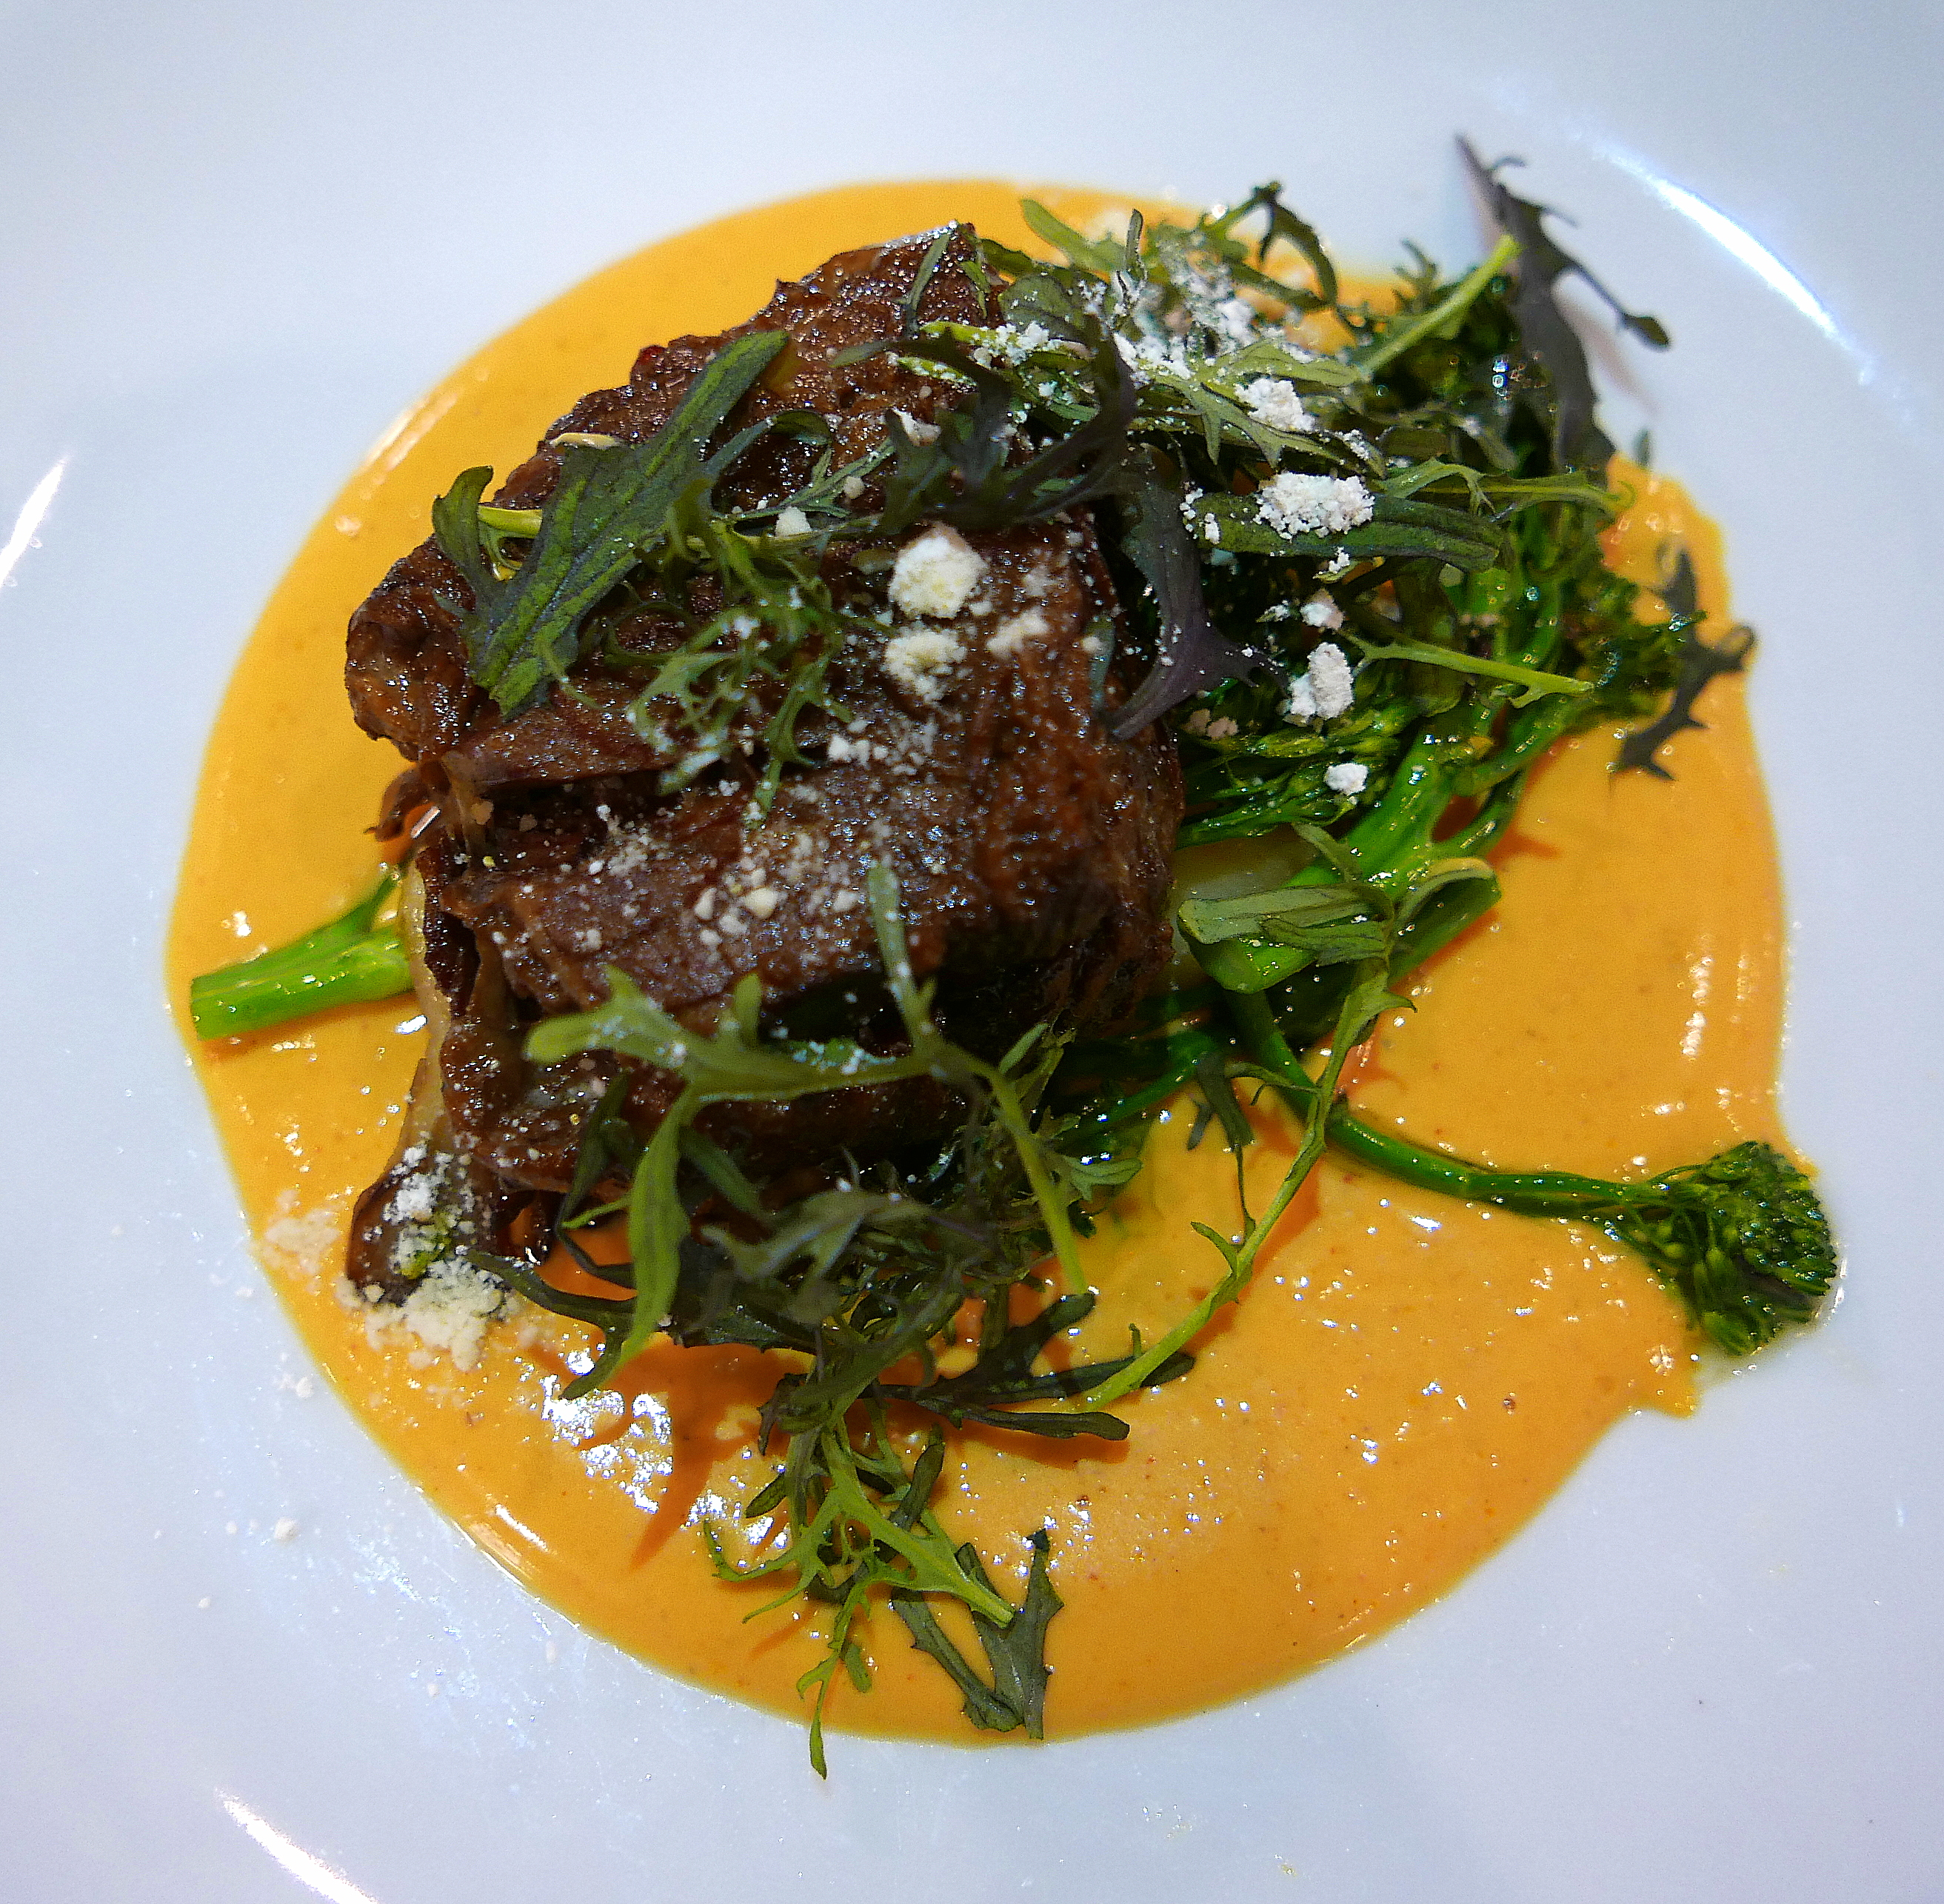 soy-braised-prime-short-rib-panang-curry-maitake-fingerling-broccolini-mustard-greens